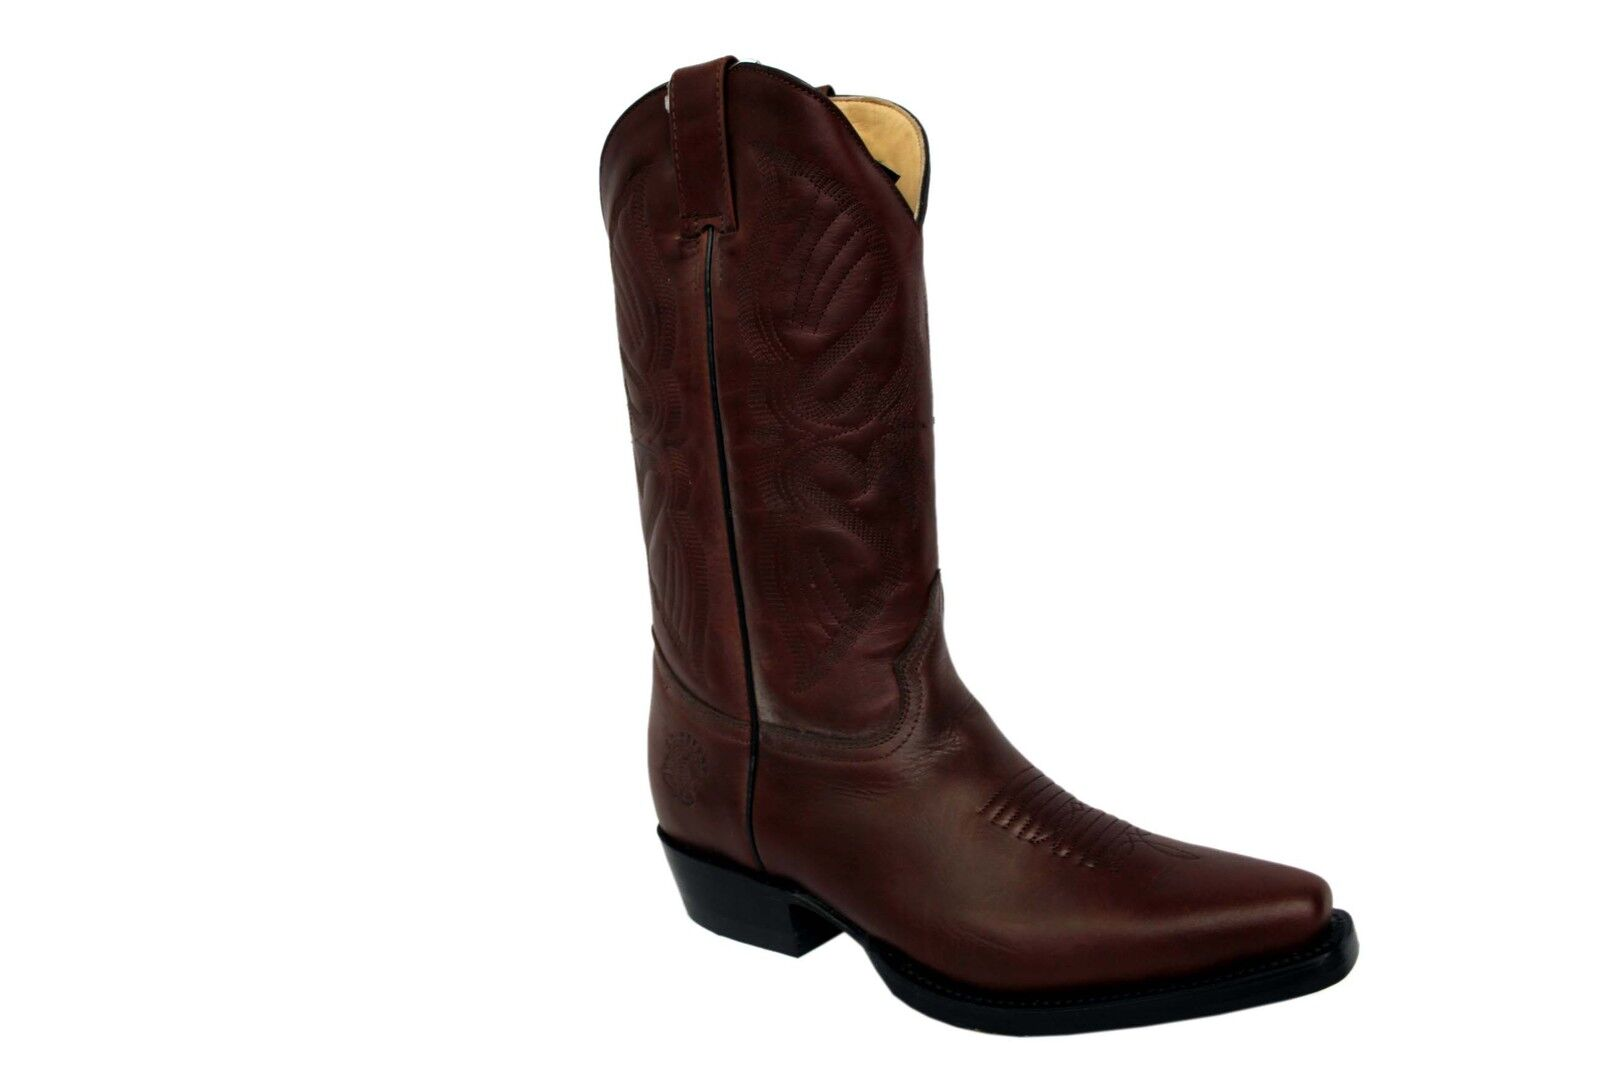 Grinders Louisiana BrownCaoba Mens Leather Pointed Boots Cowboy Western Slip On